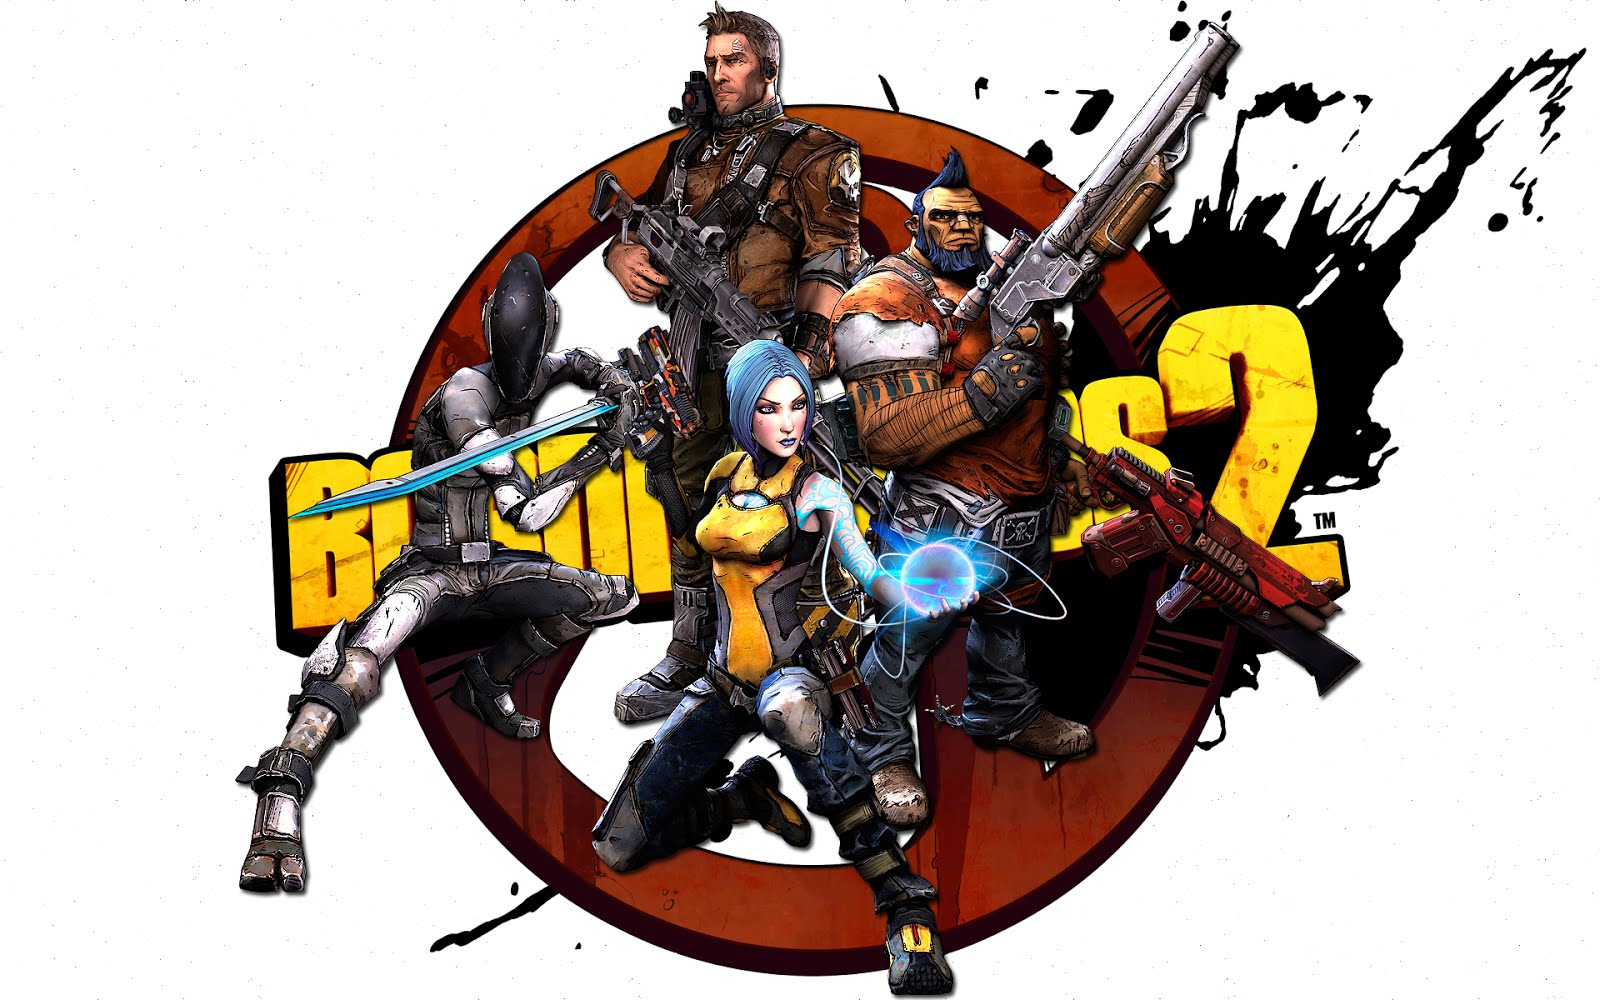 Borderlands 2 Season Pass Game Free On XBOX 360 And PS3